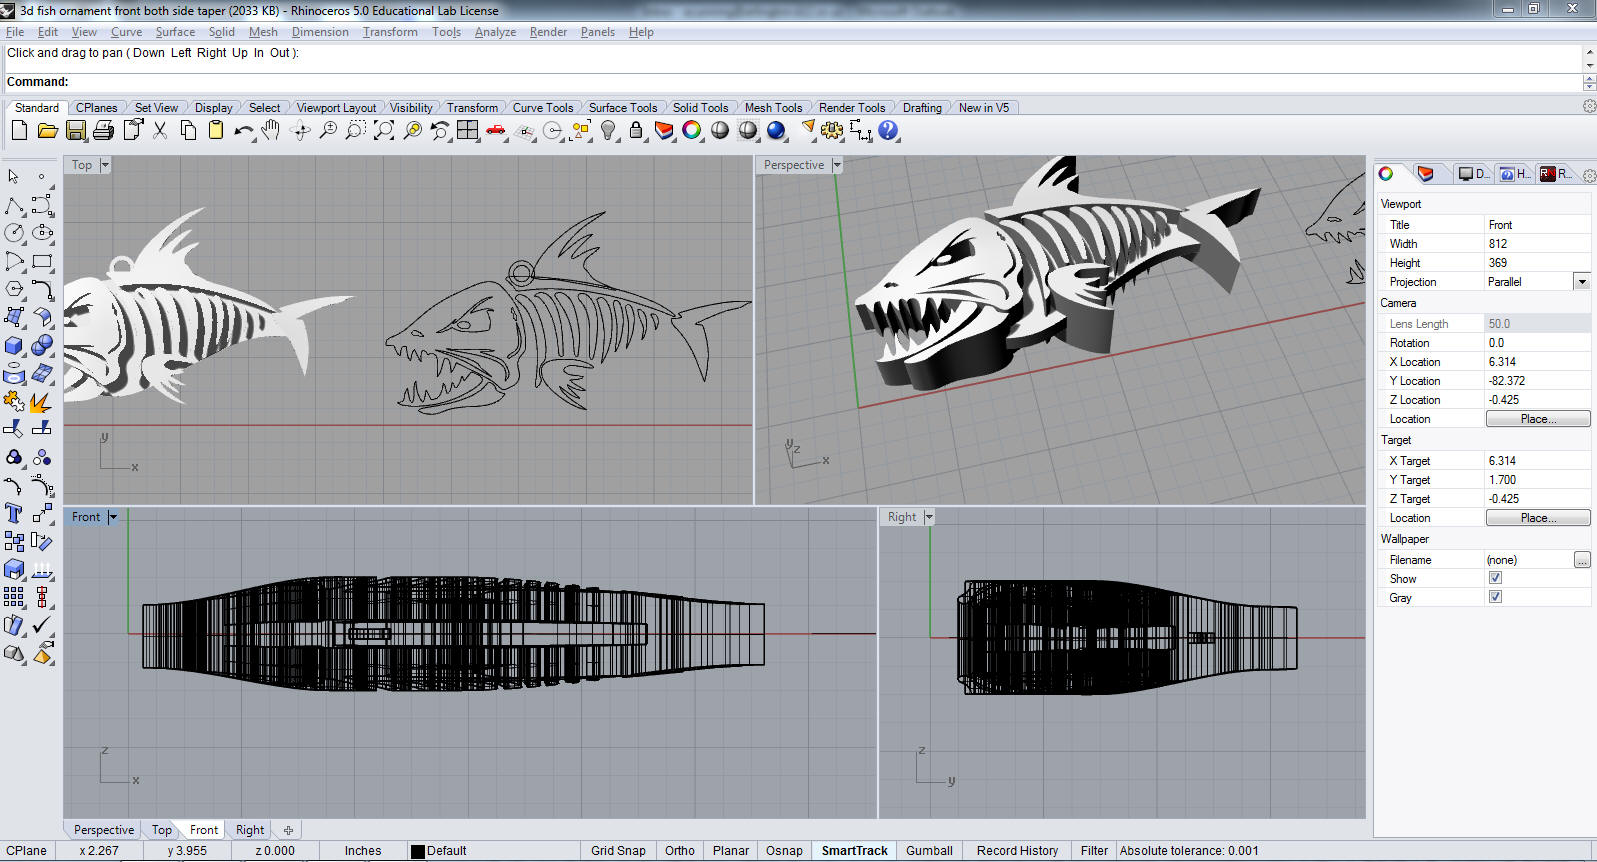 RHINO CAD 6.0  RHINO CAD 6.0 We use RHINO for 2d and 3D design to be printed in vinyl, ABSplastic, or steel.